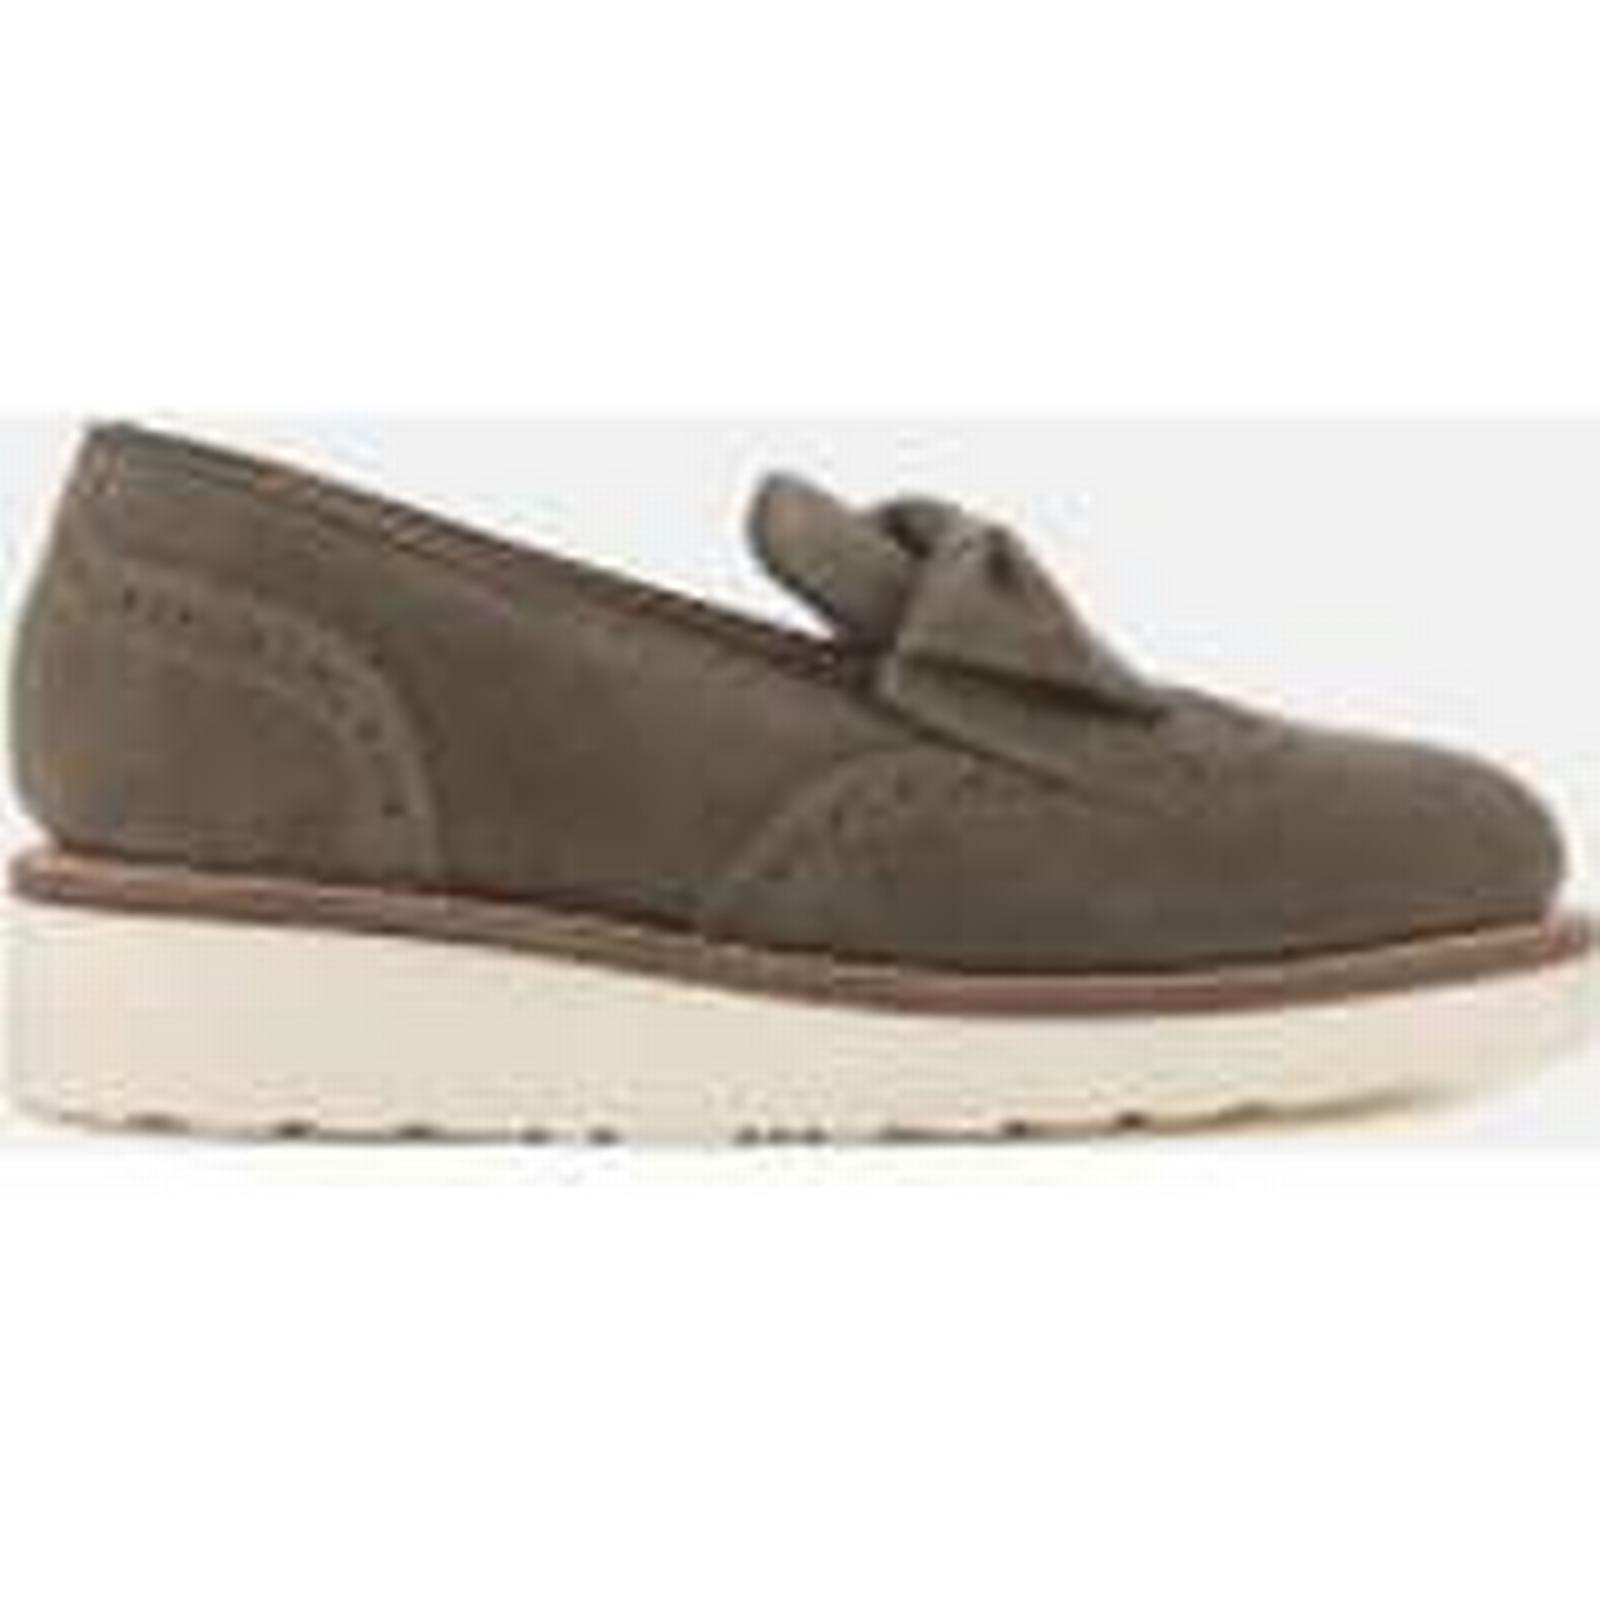 Grenson - Women's Kathleen Suede Slip On Flats - Vigogna - Grenson UK 3 - Grey 2b27ec